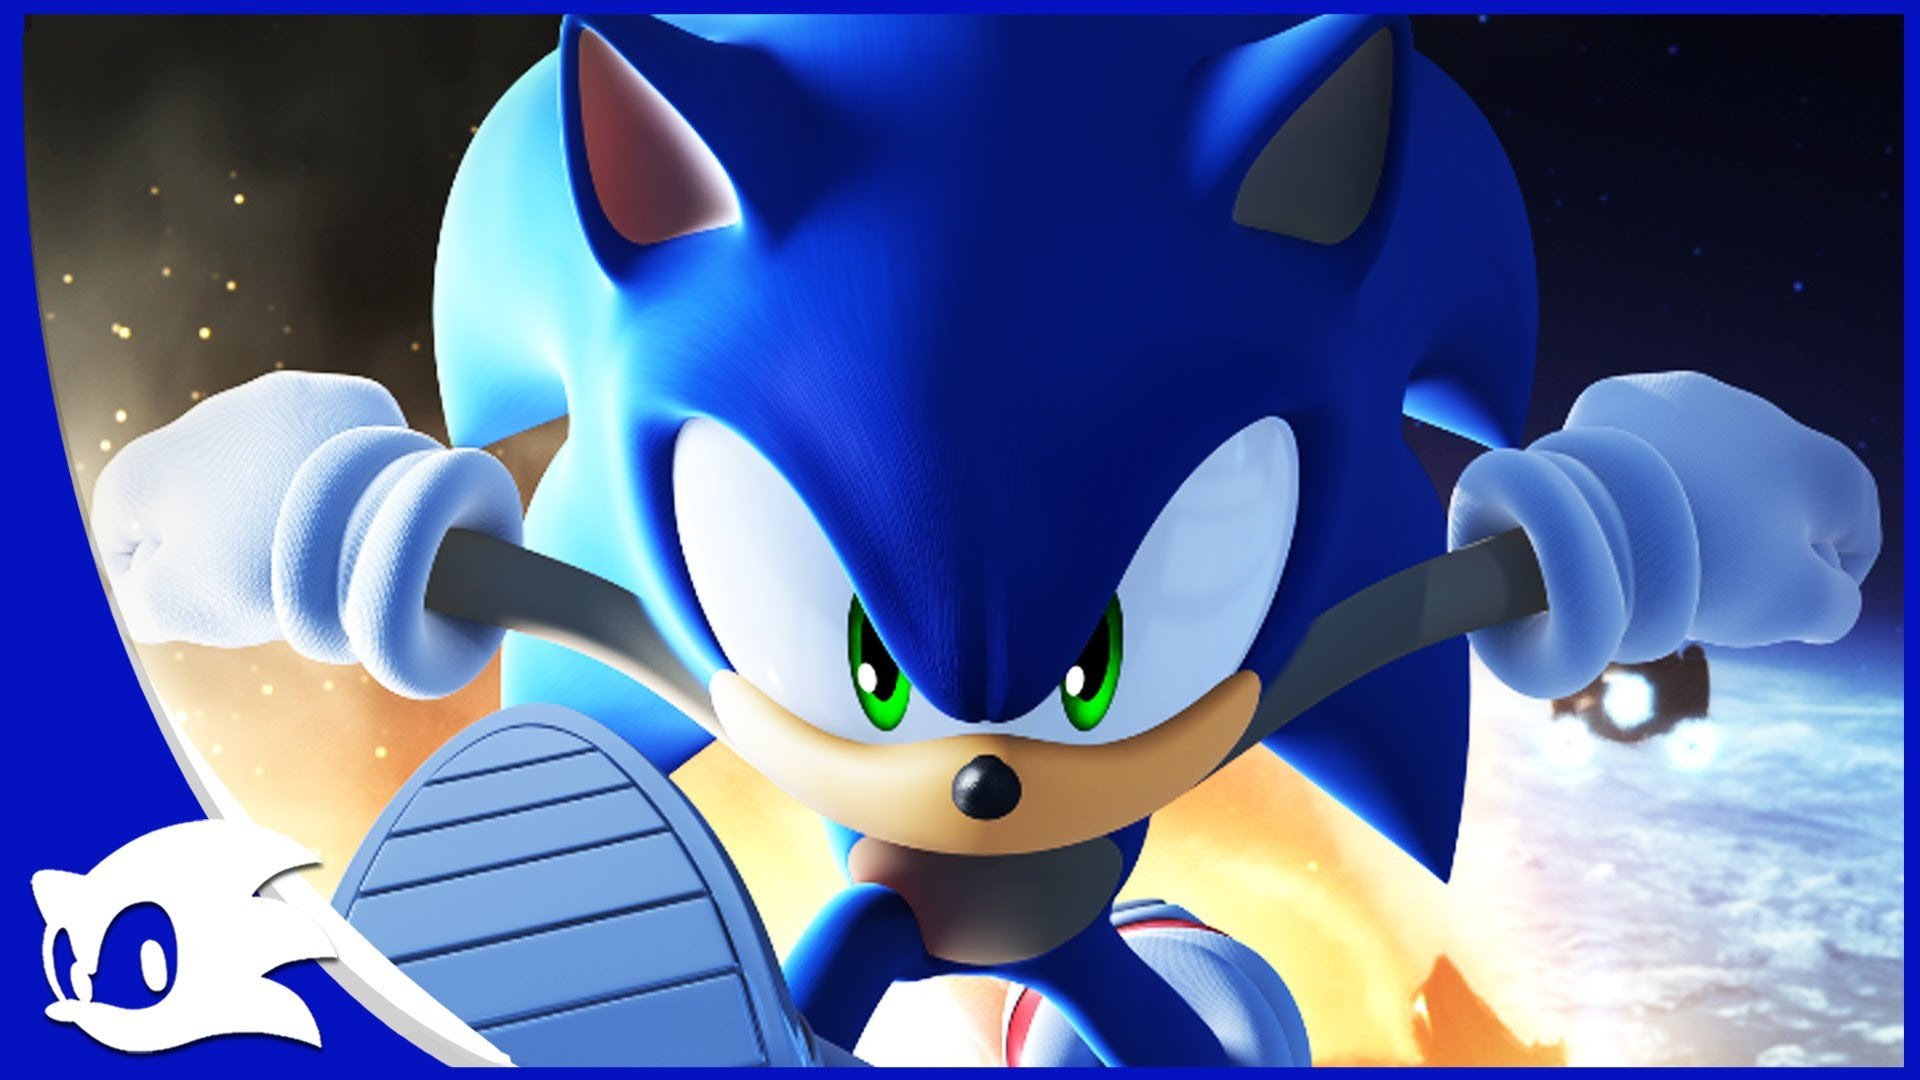 Sonic The Hedgehog Wallpaper 2018 53 Images